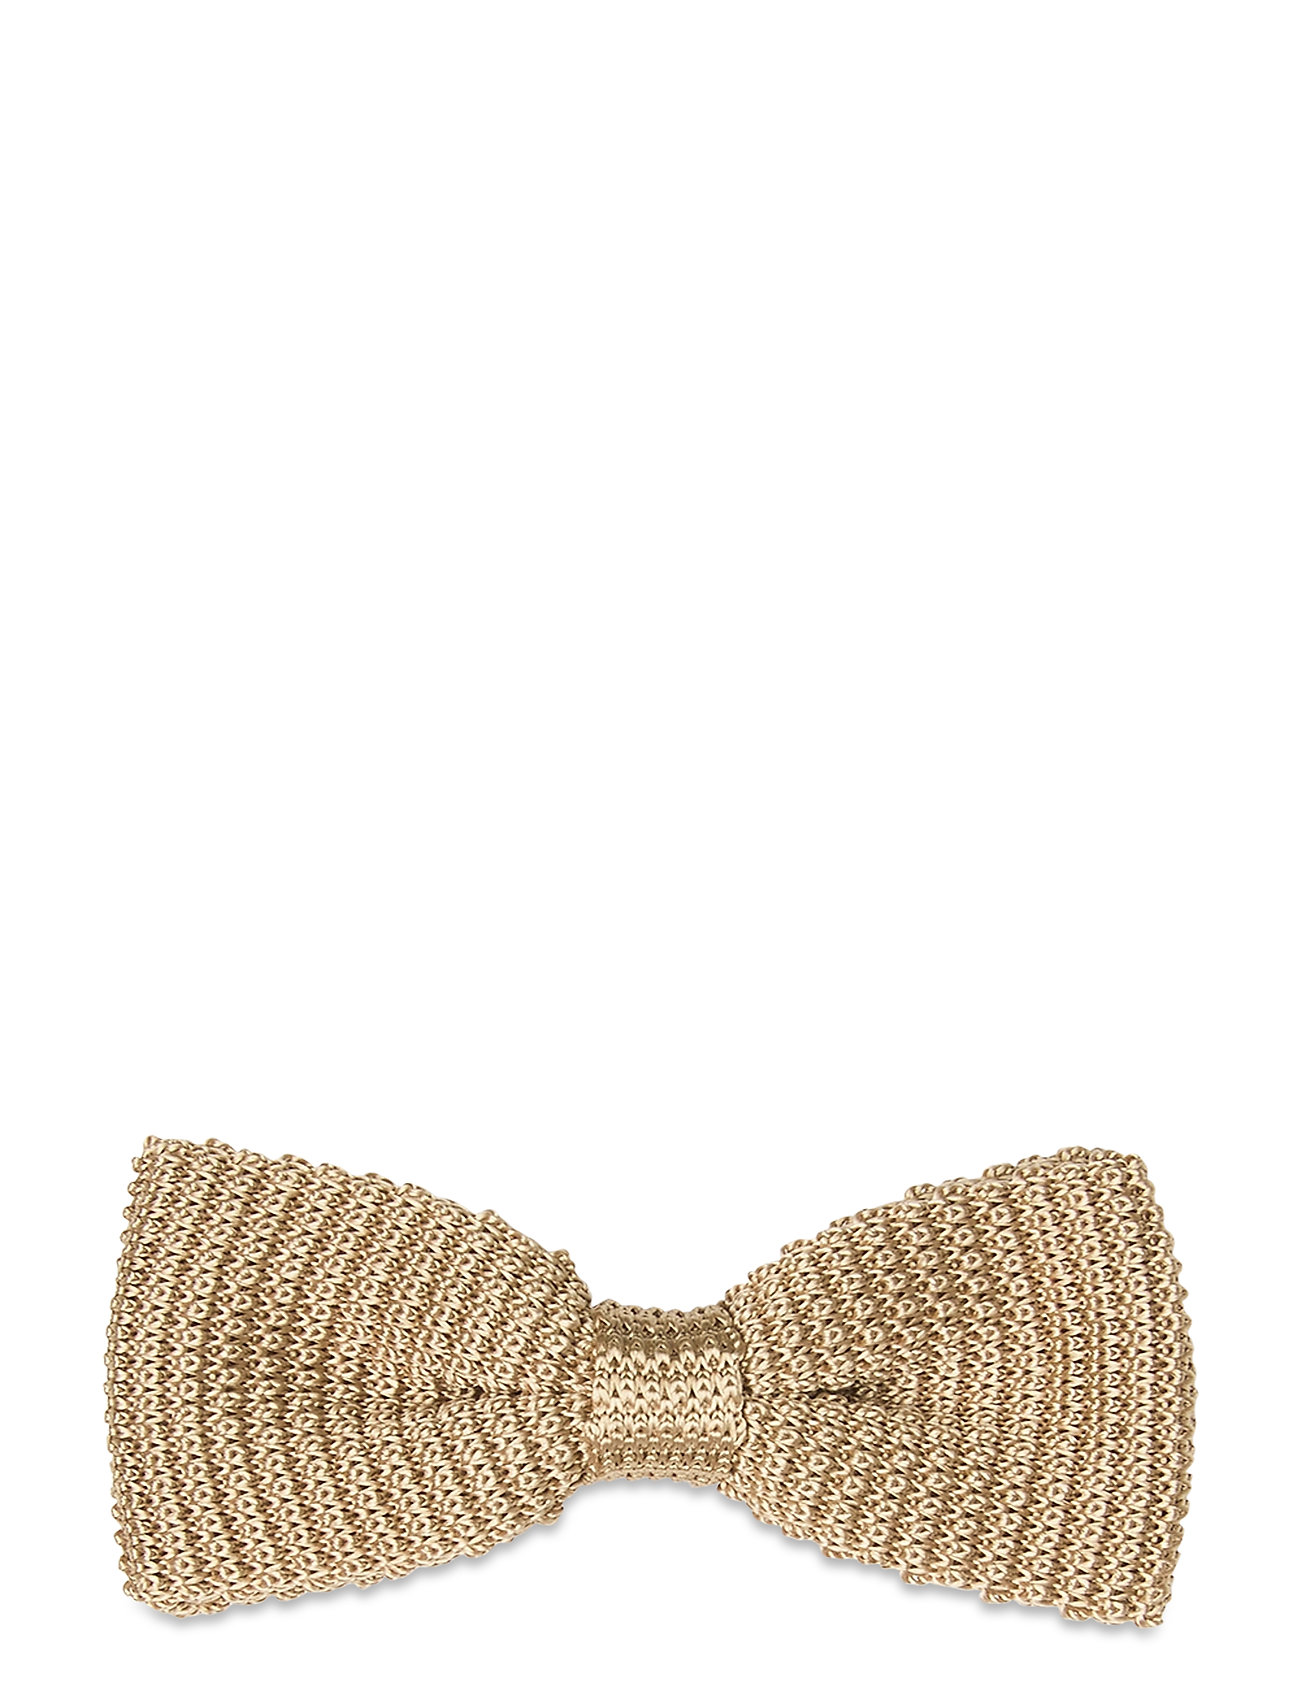 Image of Knitted Bow Tie Butterfly Beige Amanda Christensen (3474794129)